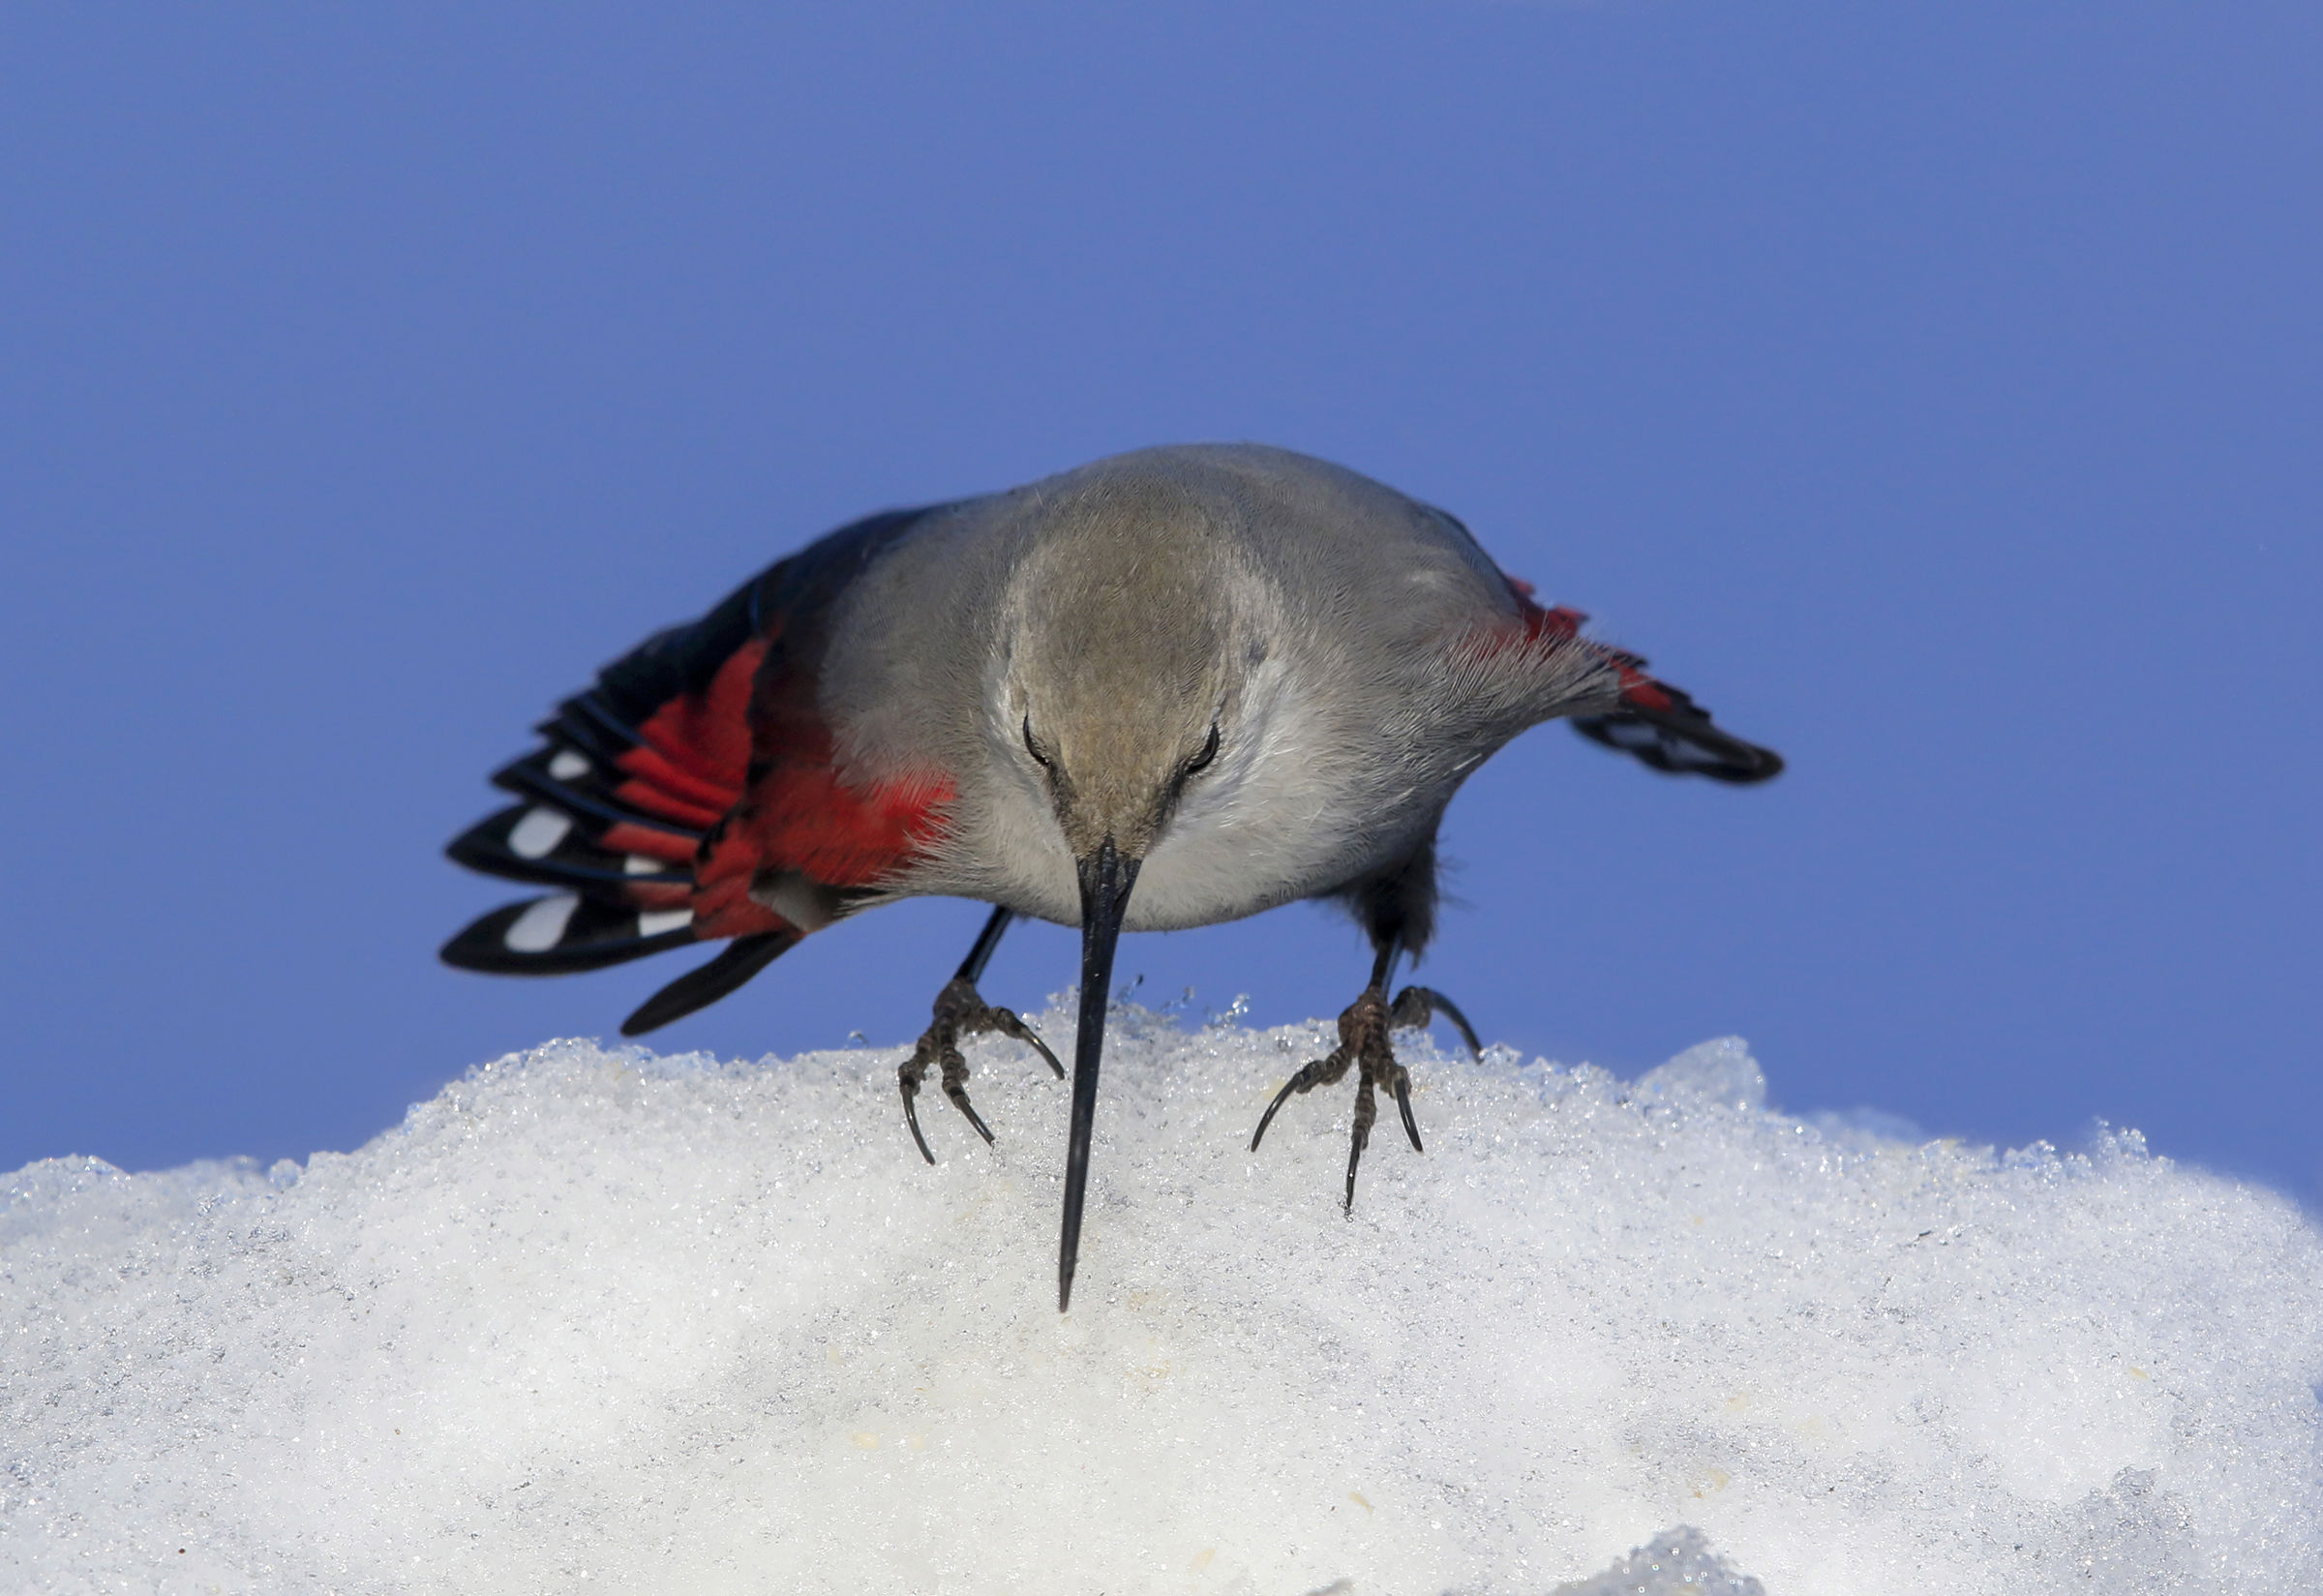 wallcreeper lands on the snow...